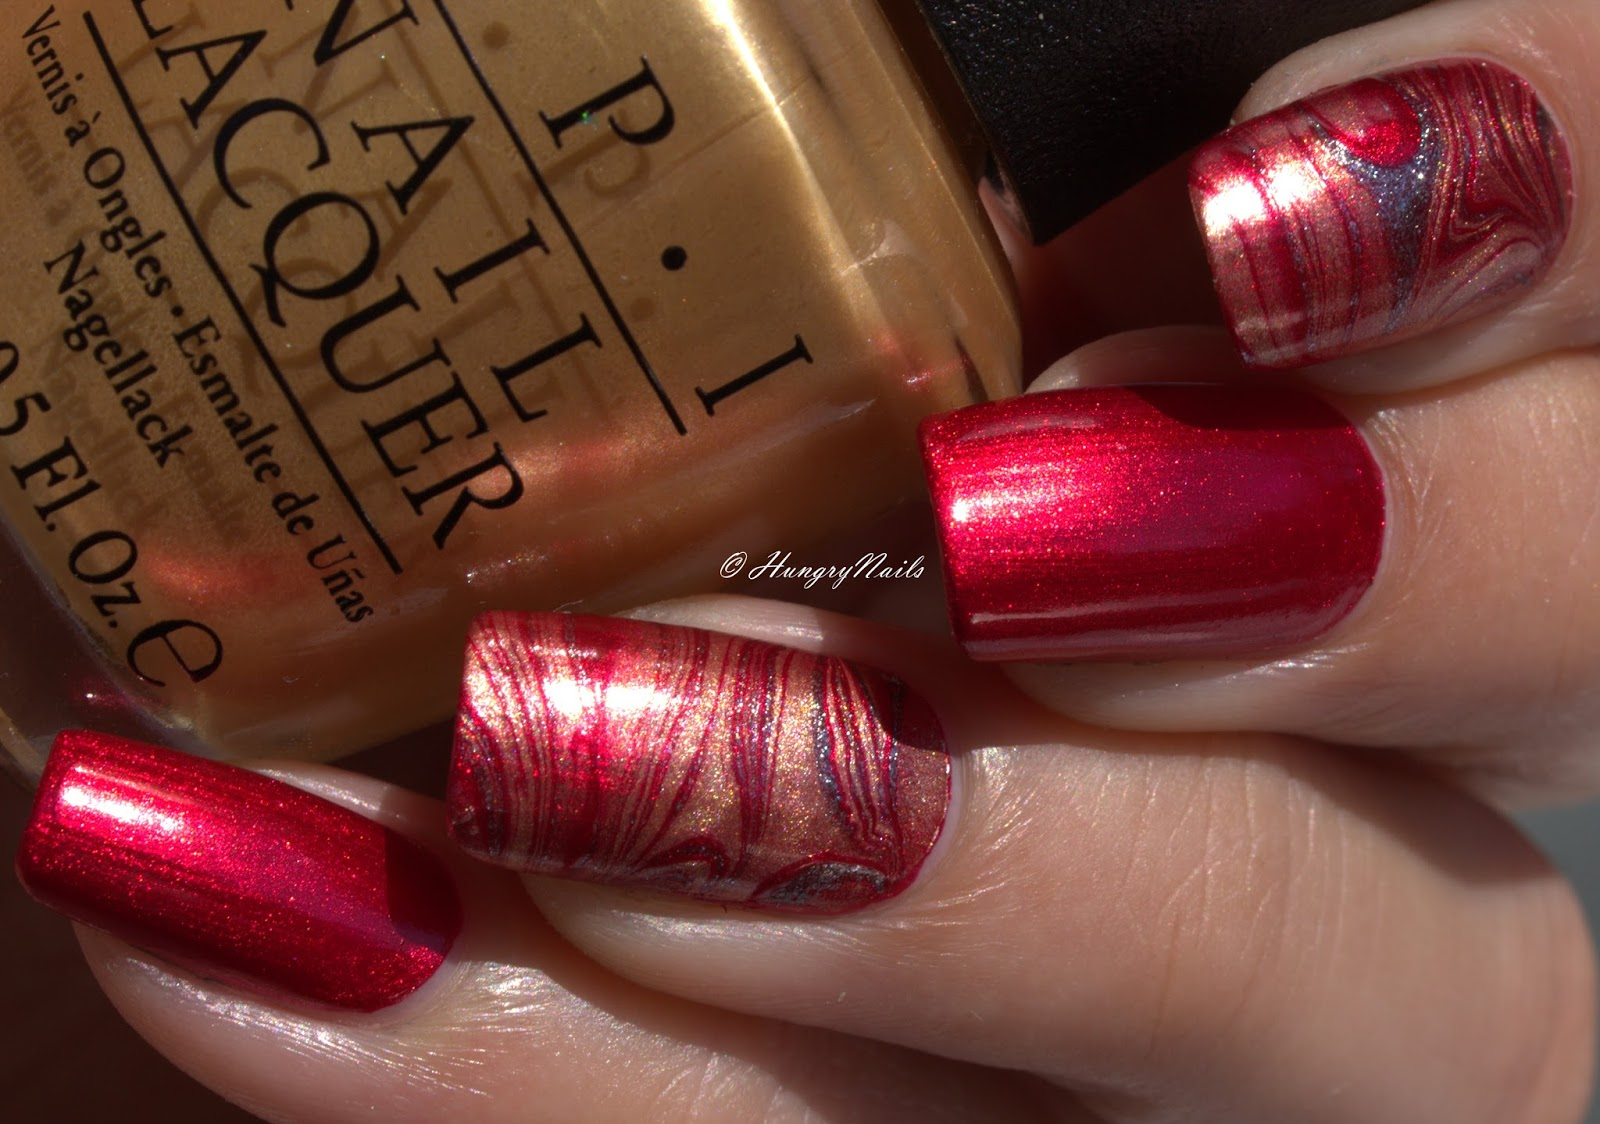 http://hungrynails.blogspot.de/2016/06/opi-affair-in-red-square.html